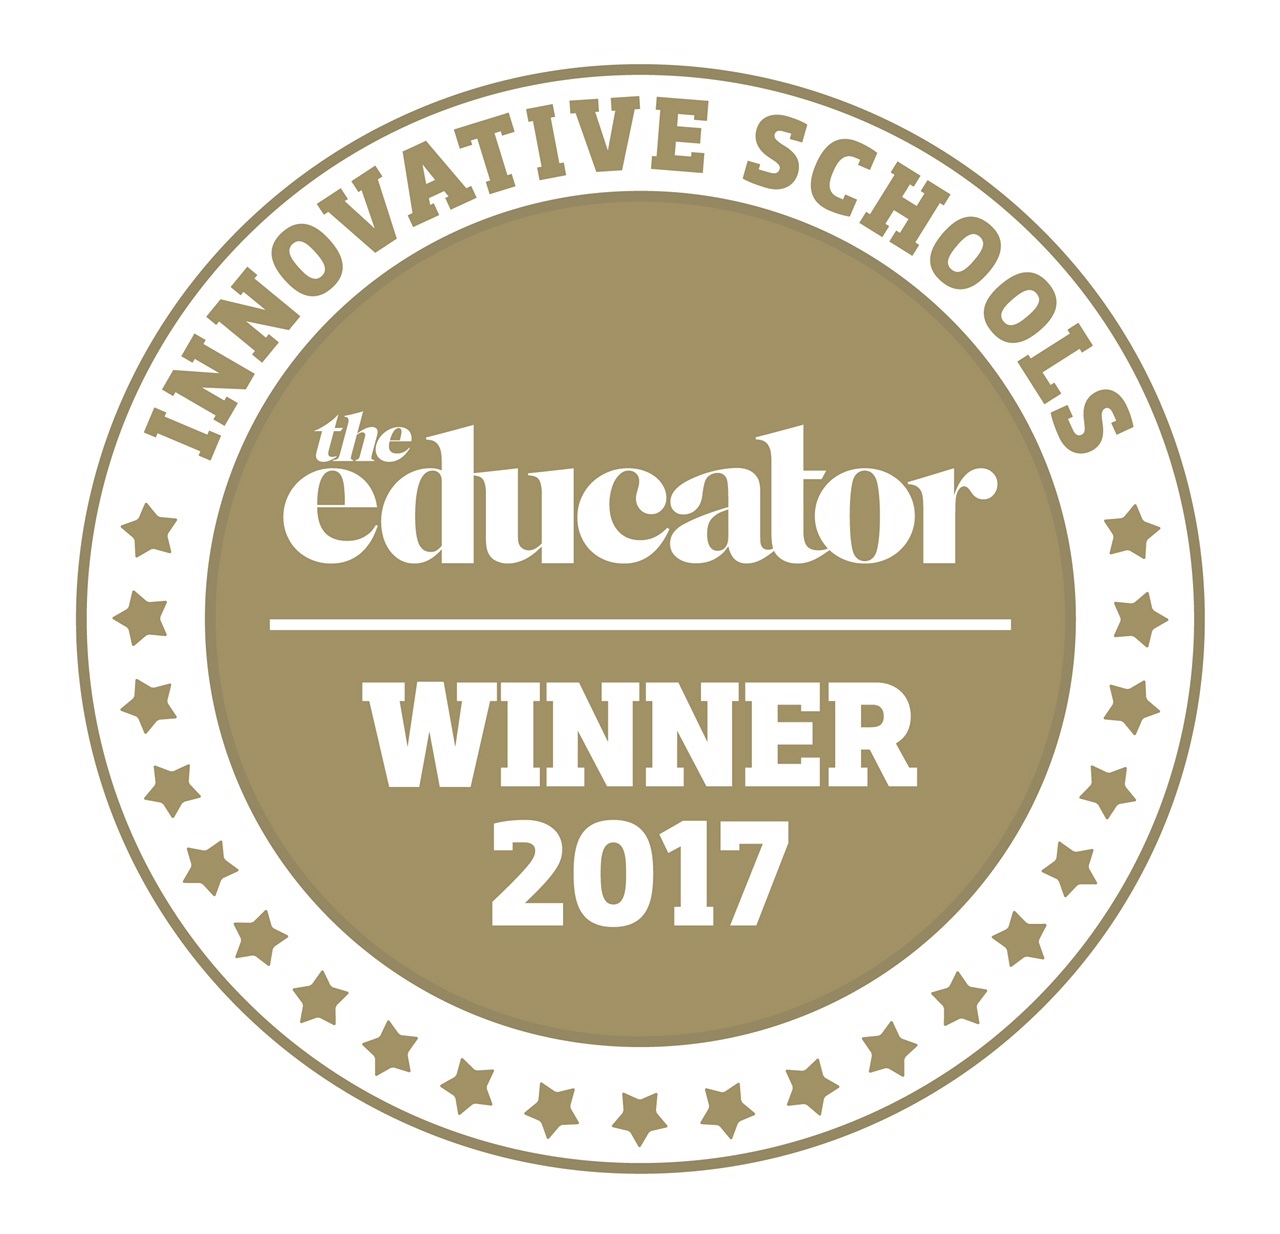 Northside Christian College recipient of the Innovative Schools Award